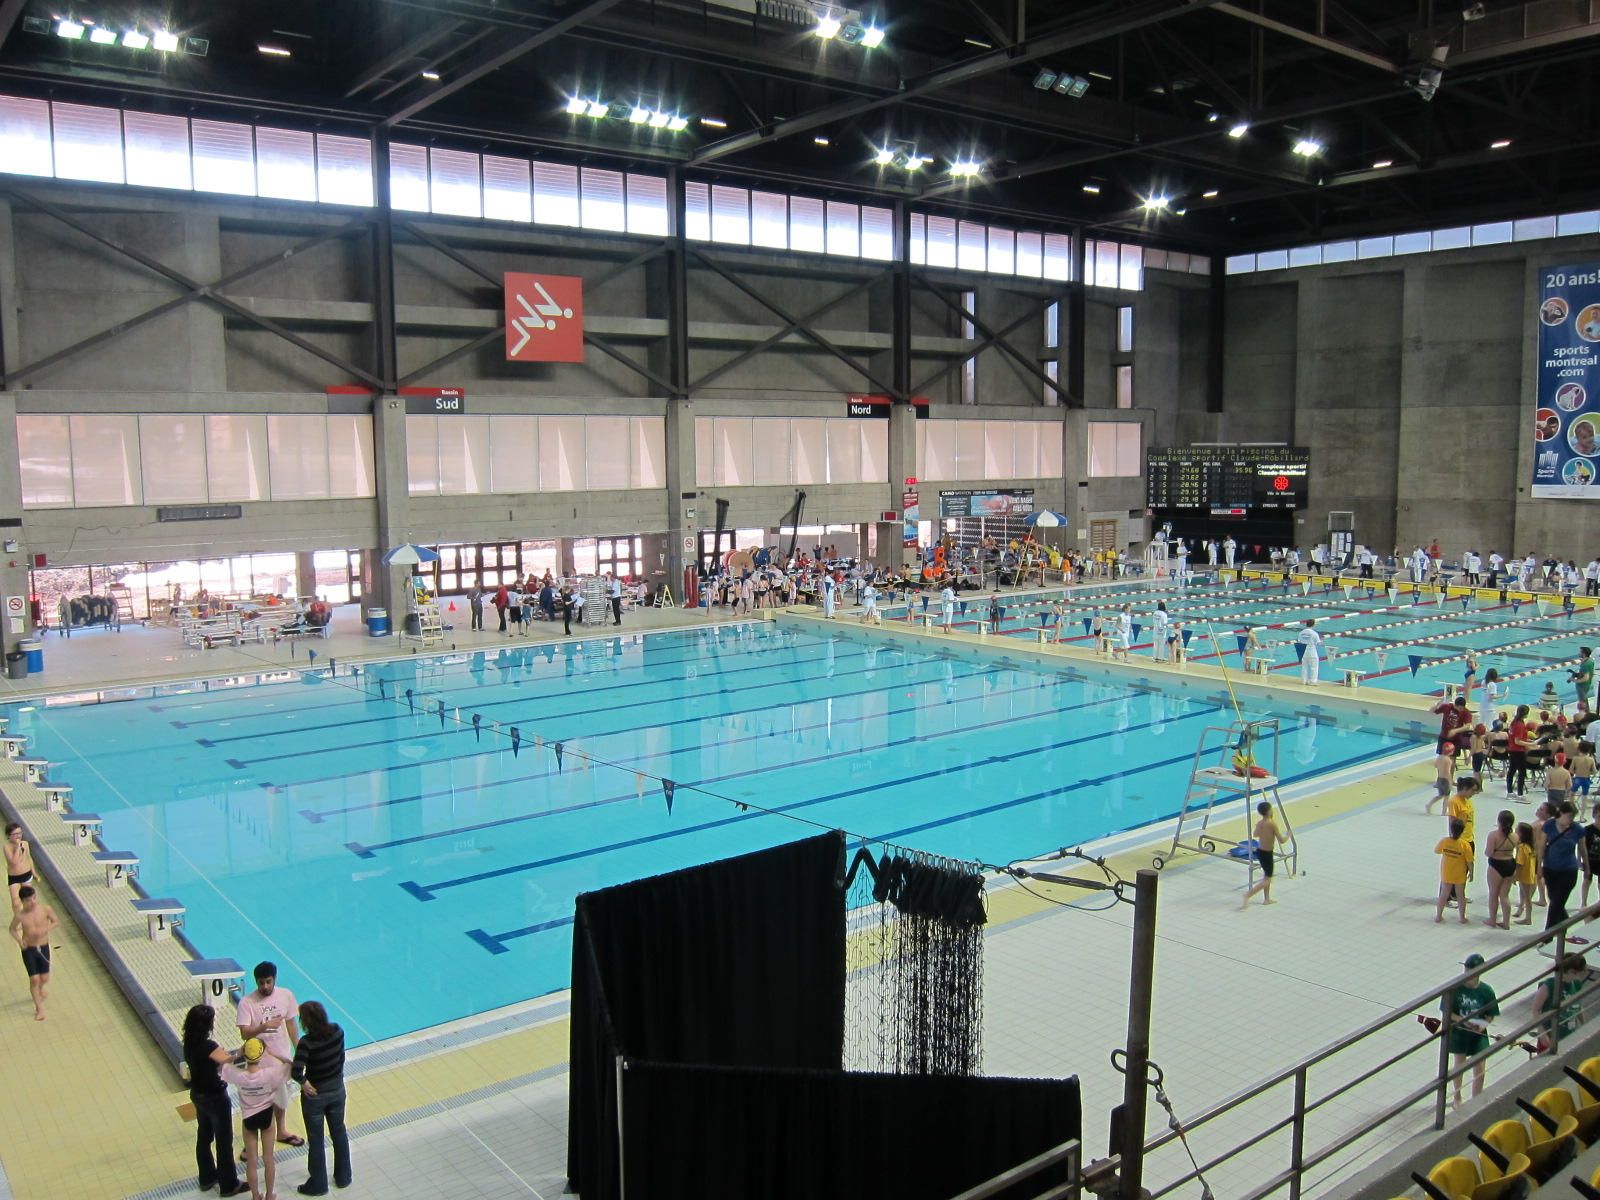 Natation vasion cr6 for Complexe sportif claude robillard piscine